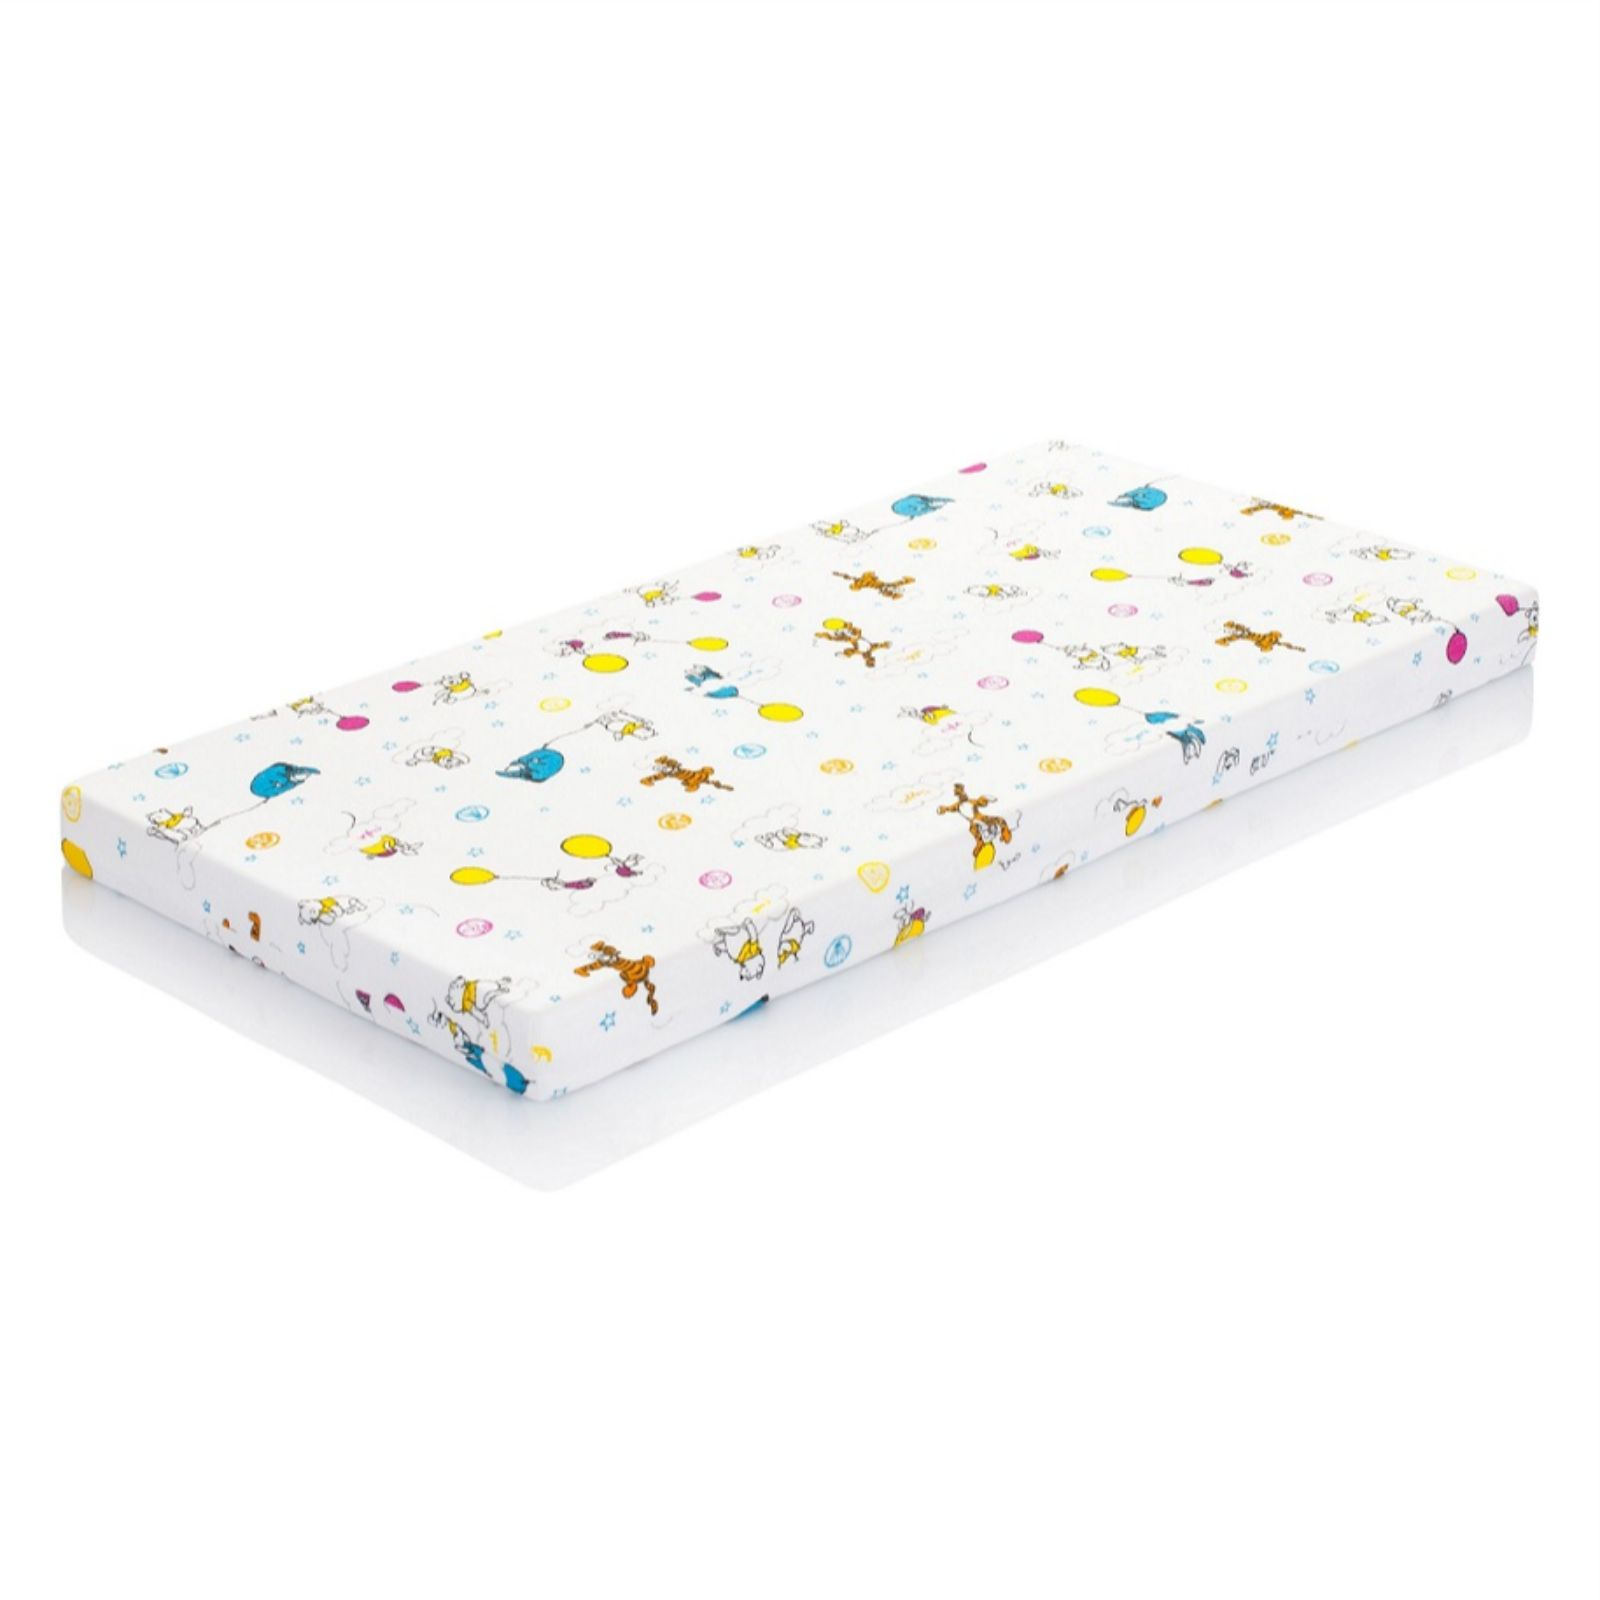 Superbe Hevea Cot Bed Fitted Sheet   Disney Winnie The Pooh